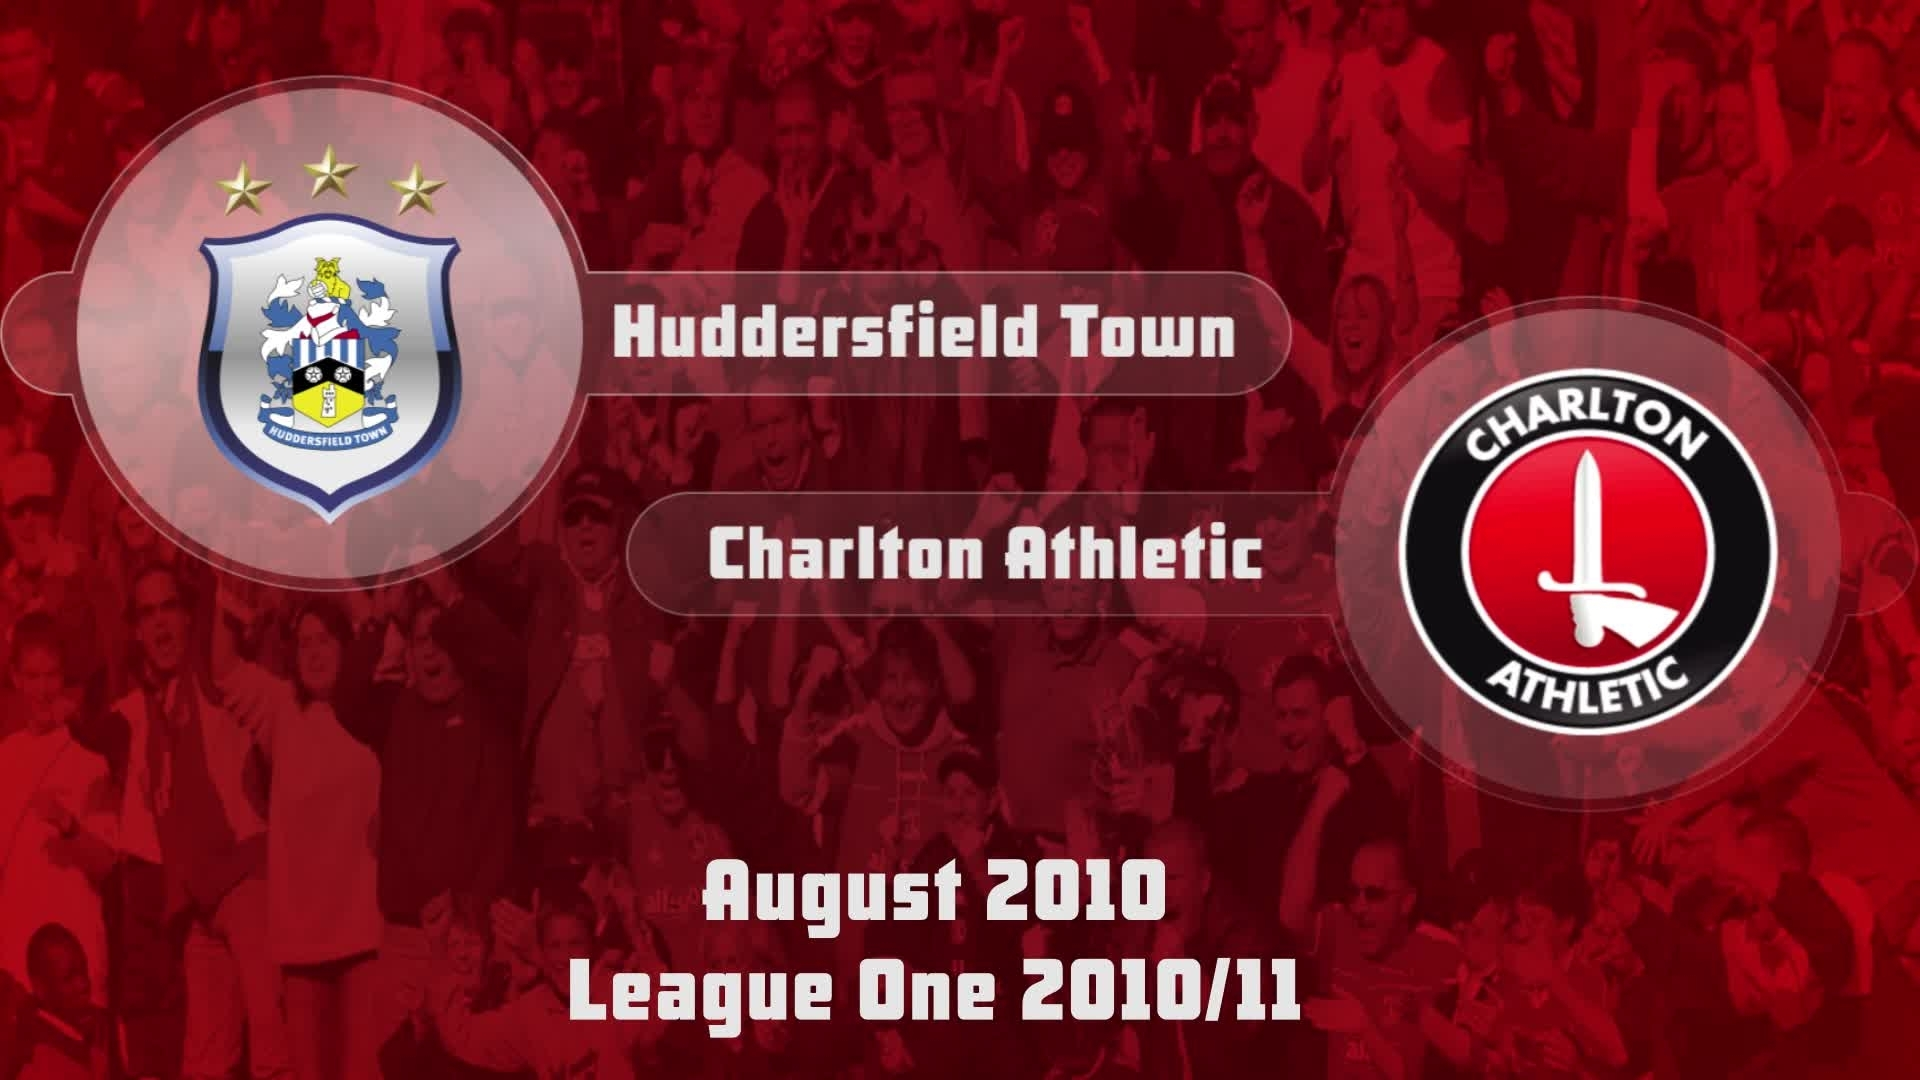 05 HIGHLIGHTS | Huddersfield 3 Charlton 1 (Aug 2010)